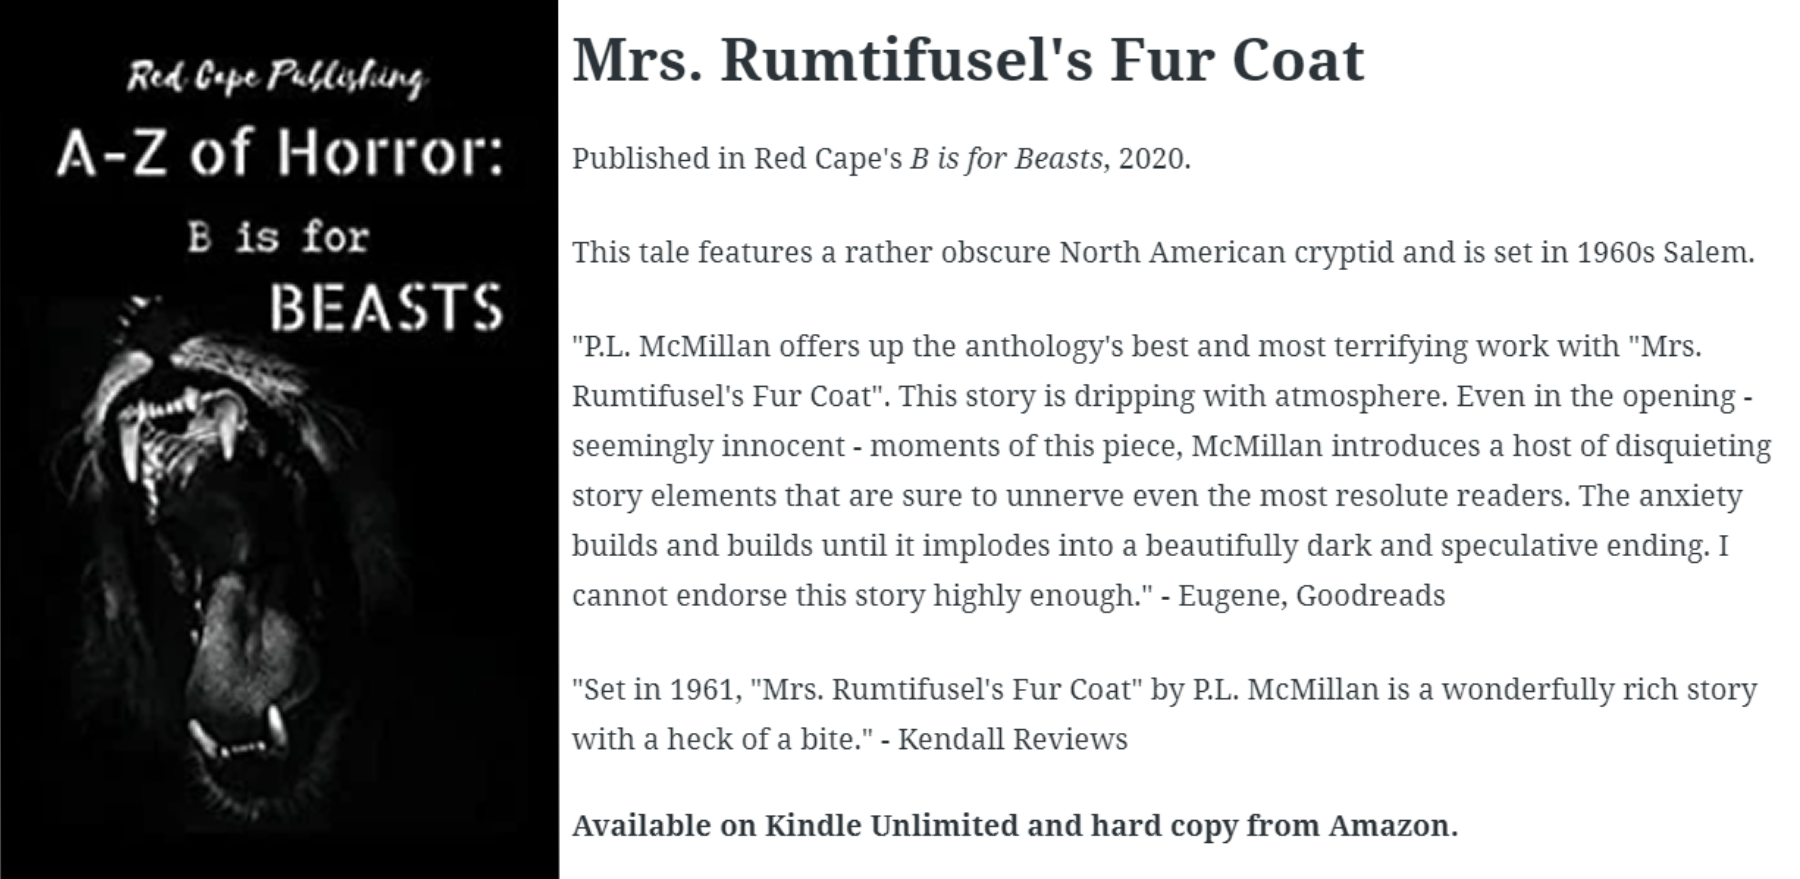 Mrs. Rumtifusel's Fur Coat